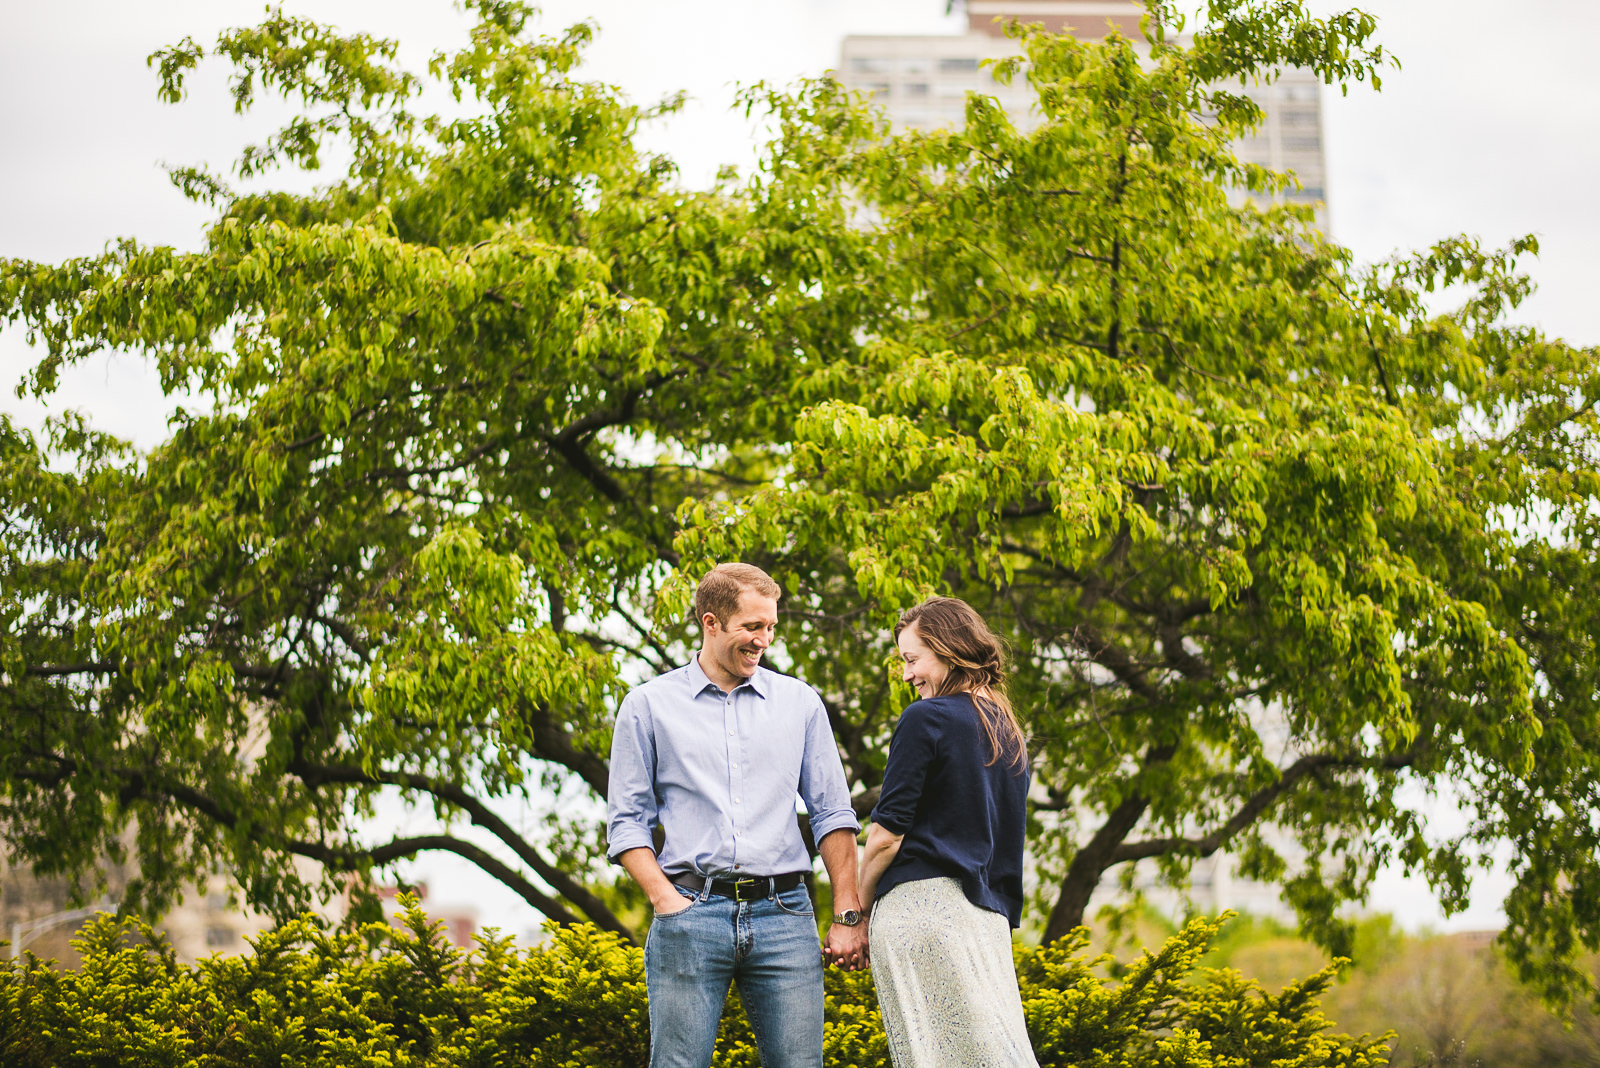 16 hyde park engagement session - Hyde Park Chicago Engagement Photos // Annemarie + Zach